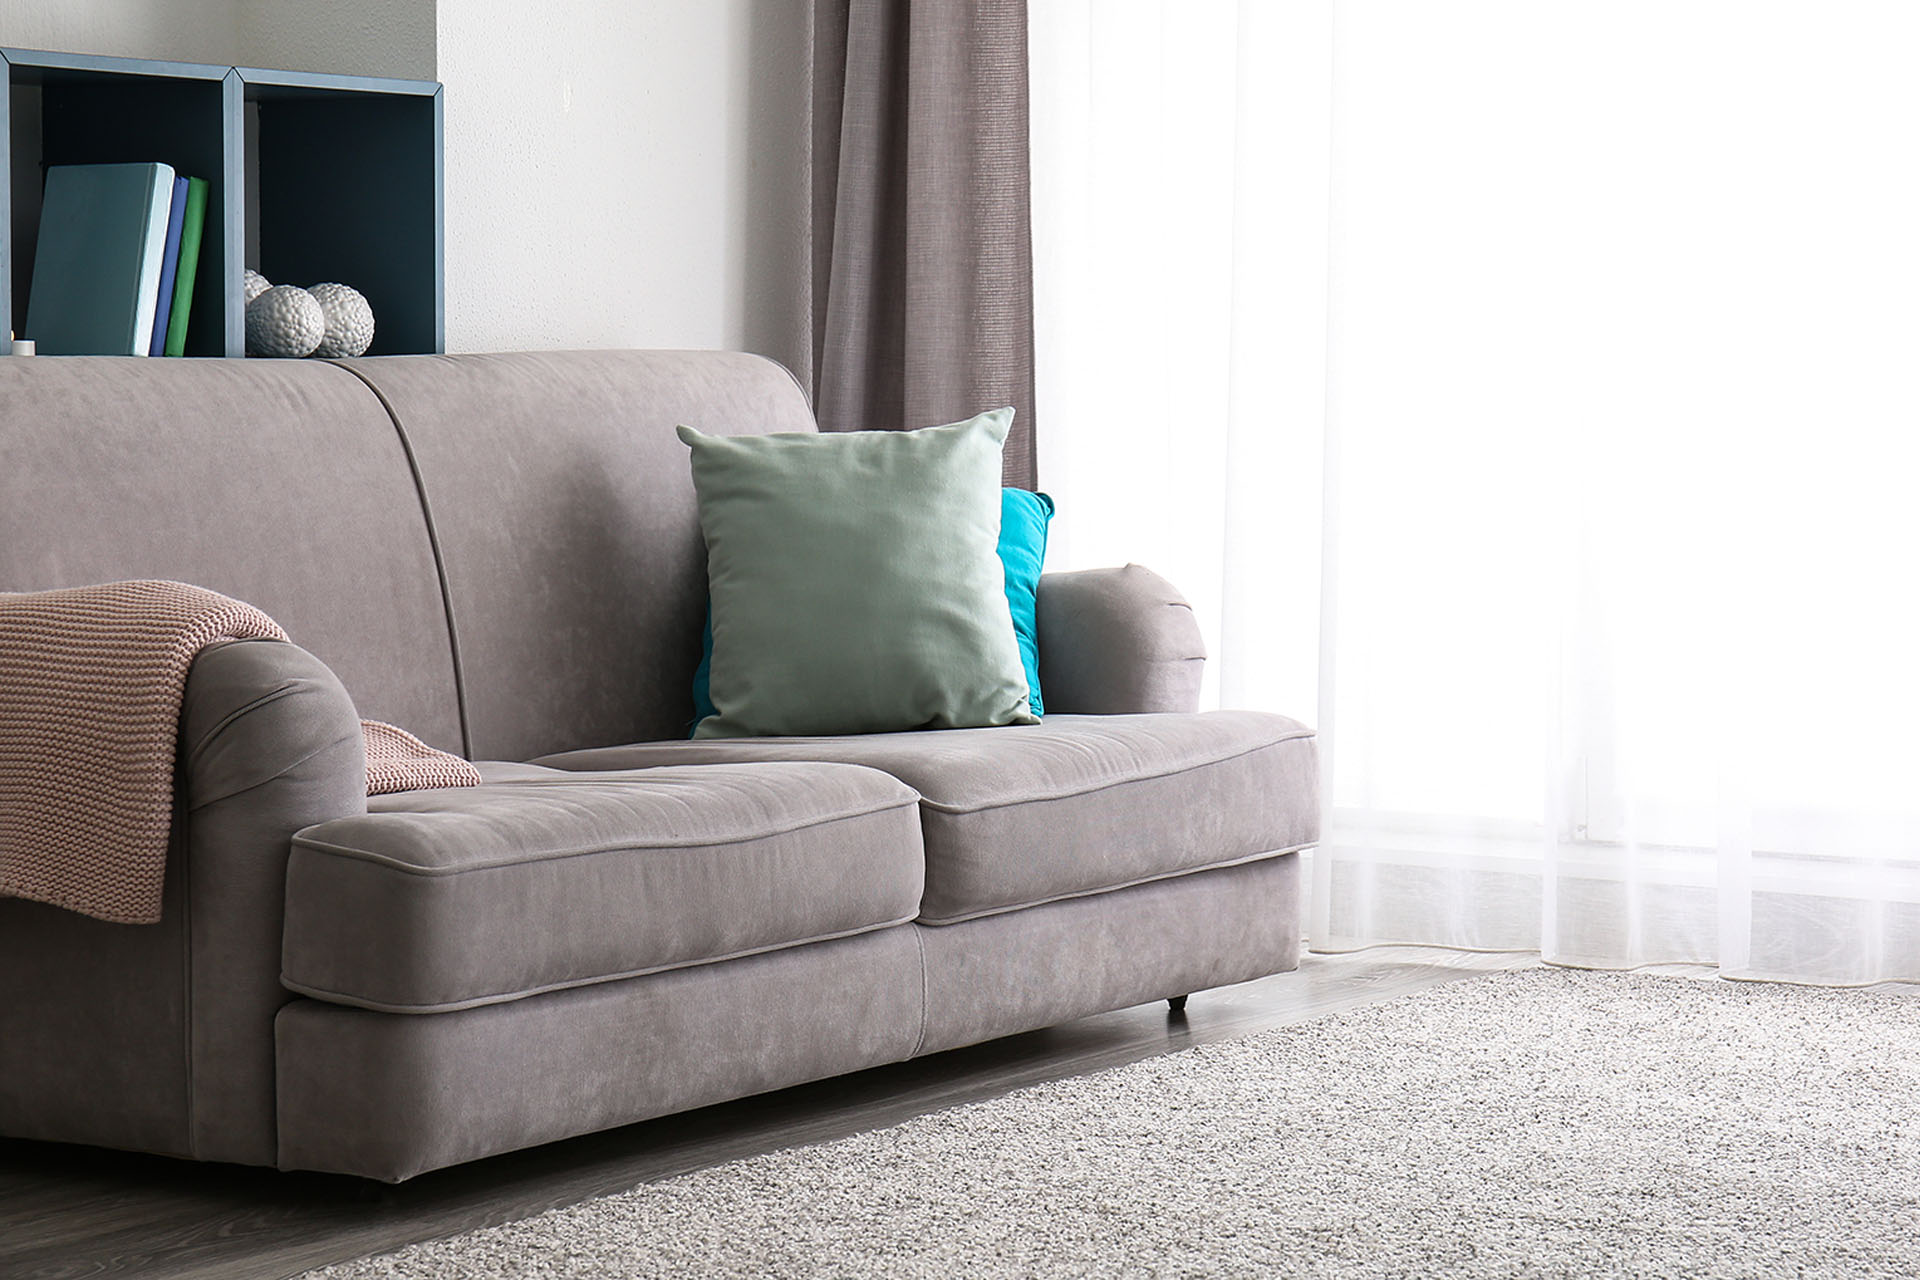 Grey fabric lounge with green cushion